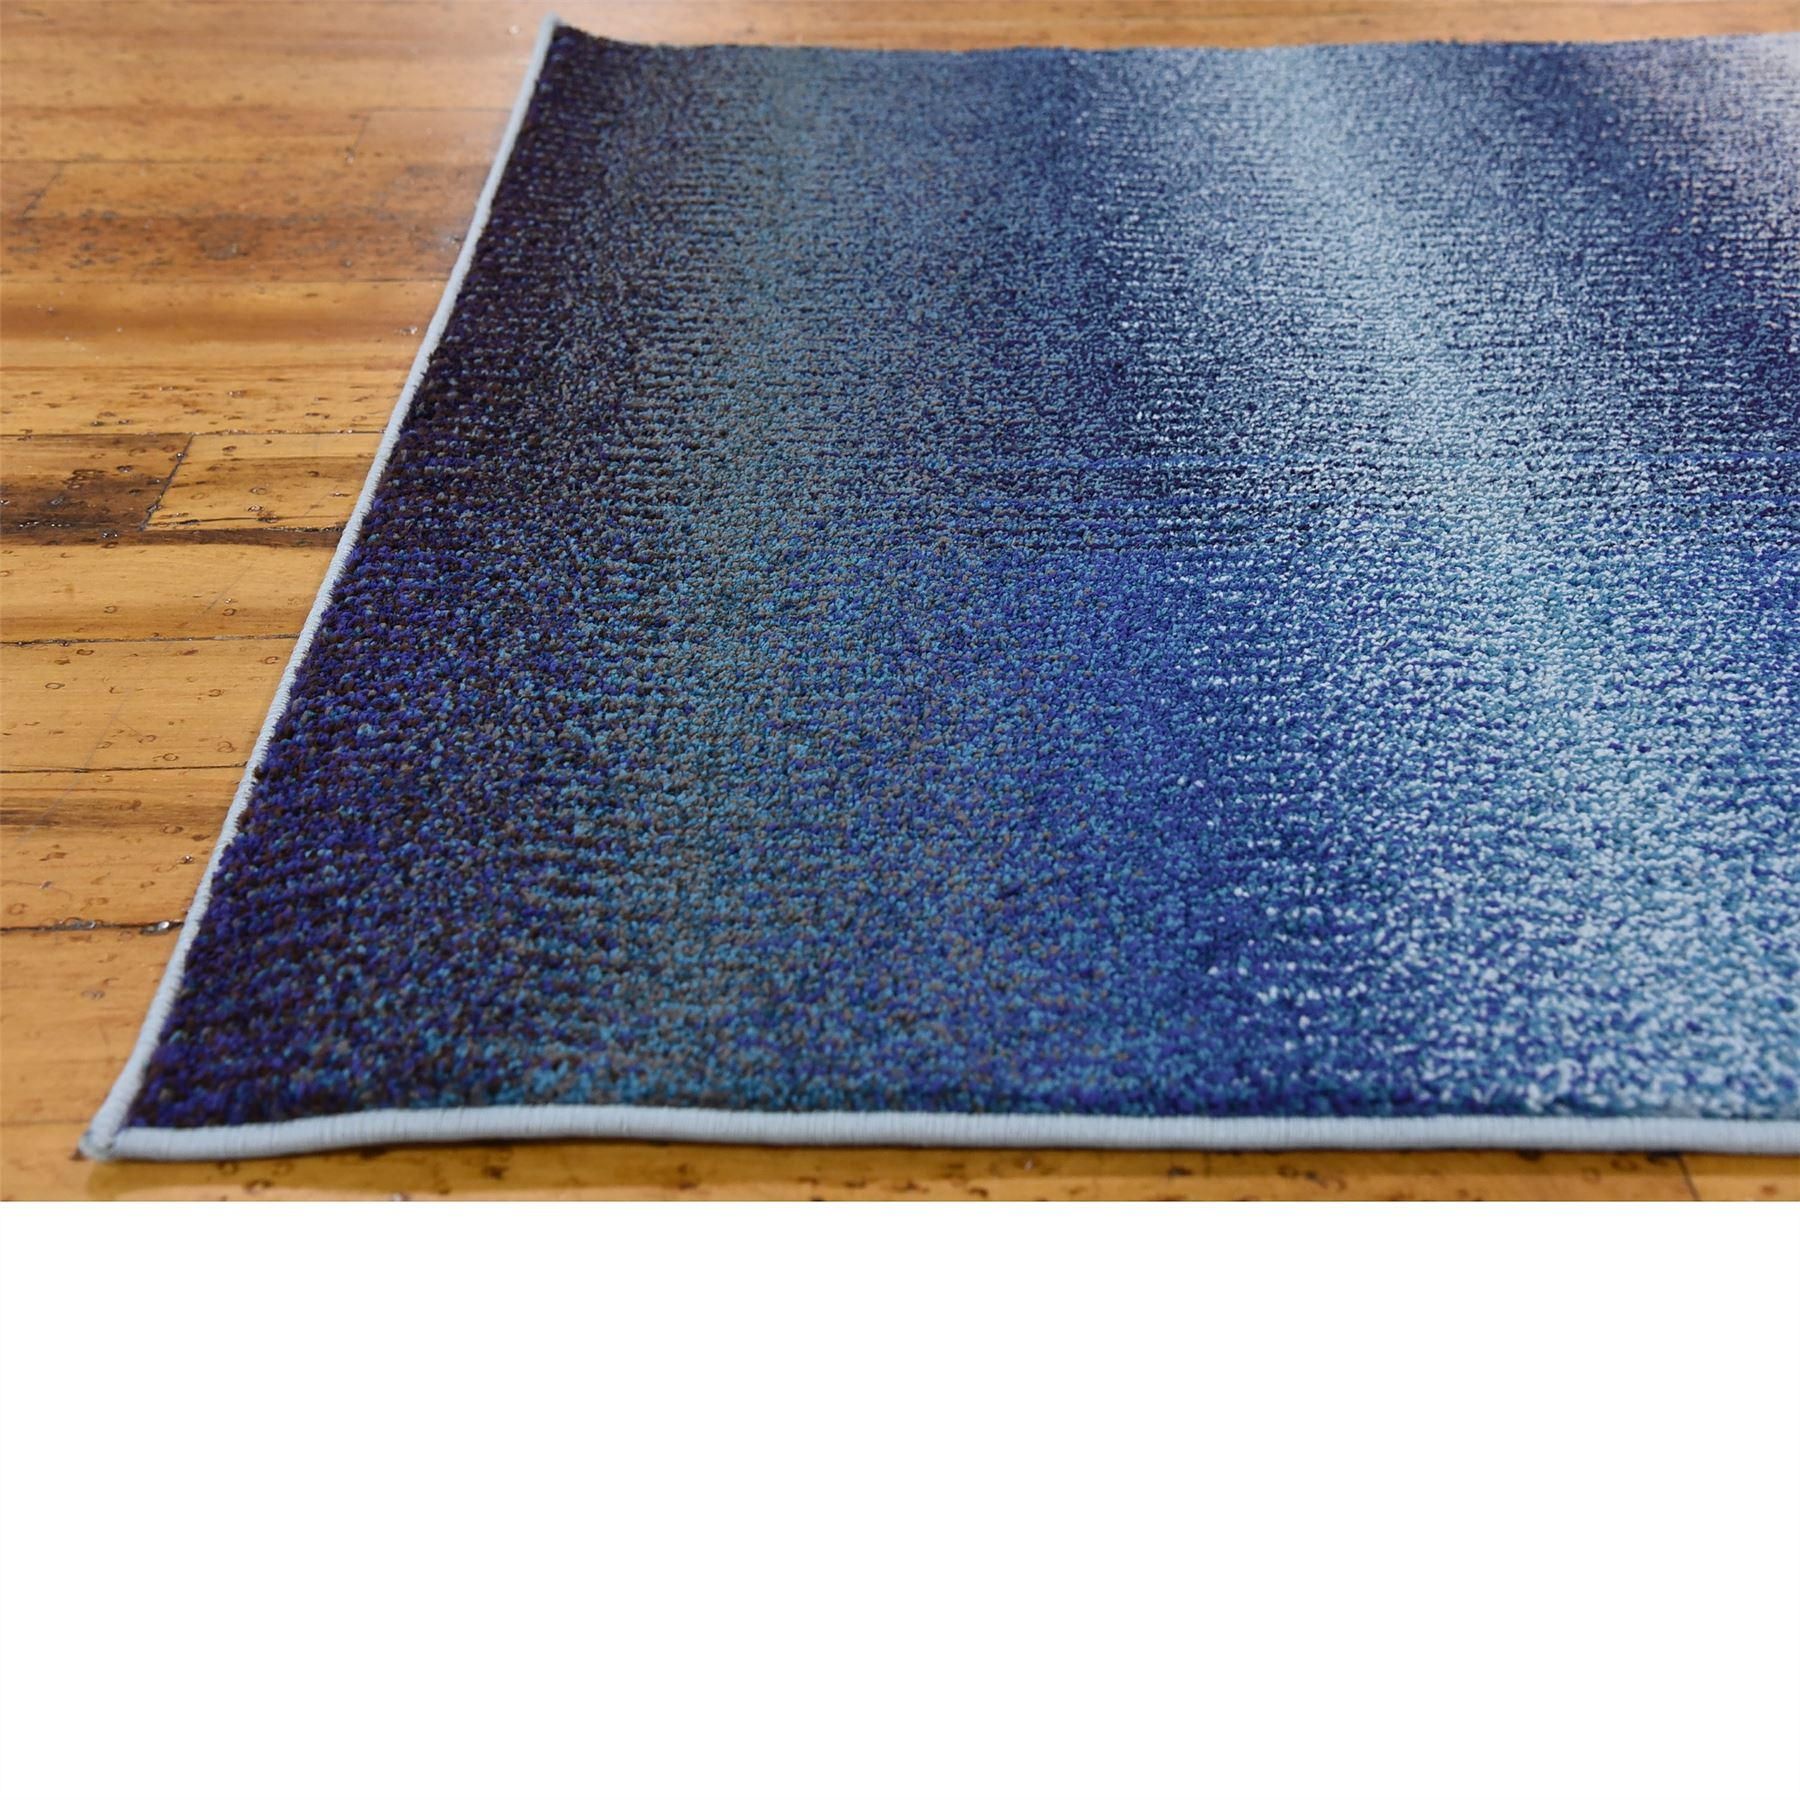 Modern Looking Rug: Modern Style Soft Blue Area Rug Contemporary Design Large